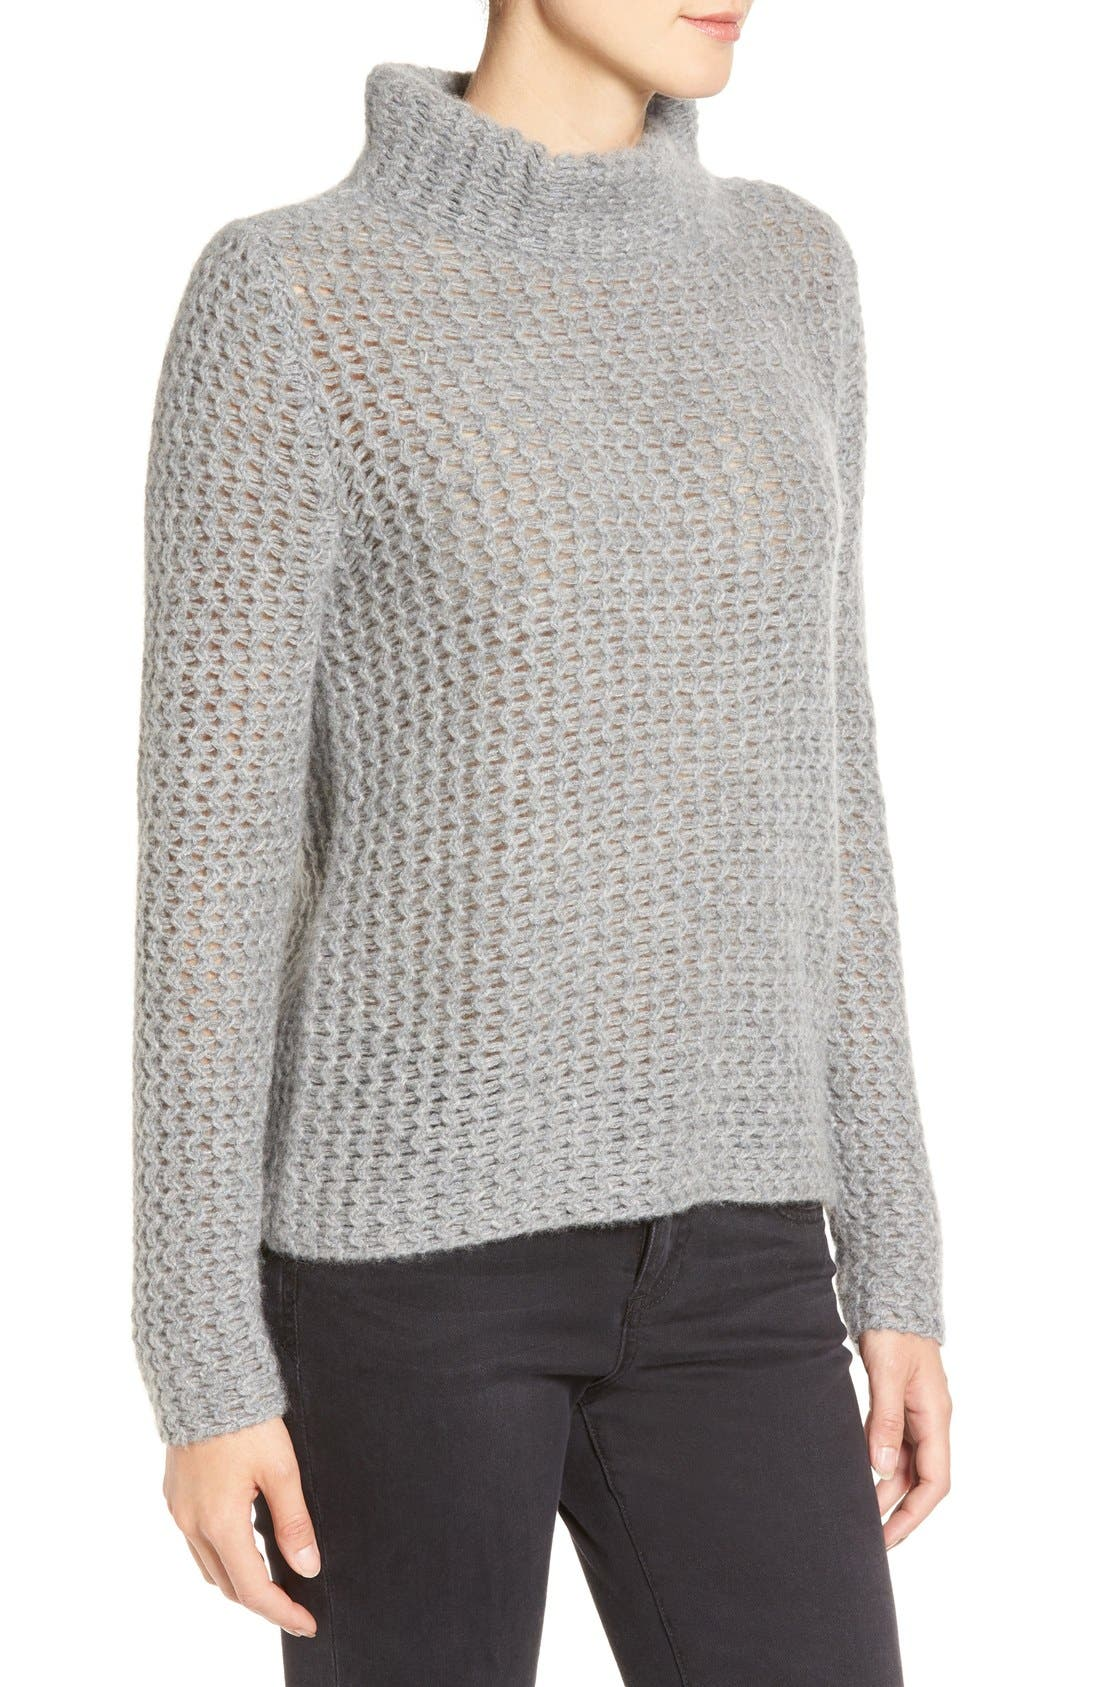 Stitch Detail Cashmere Mock Neck Sweater,                             Alternate thumbnail 4, color,                             Grey